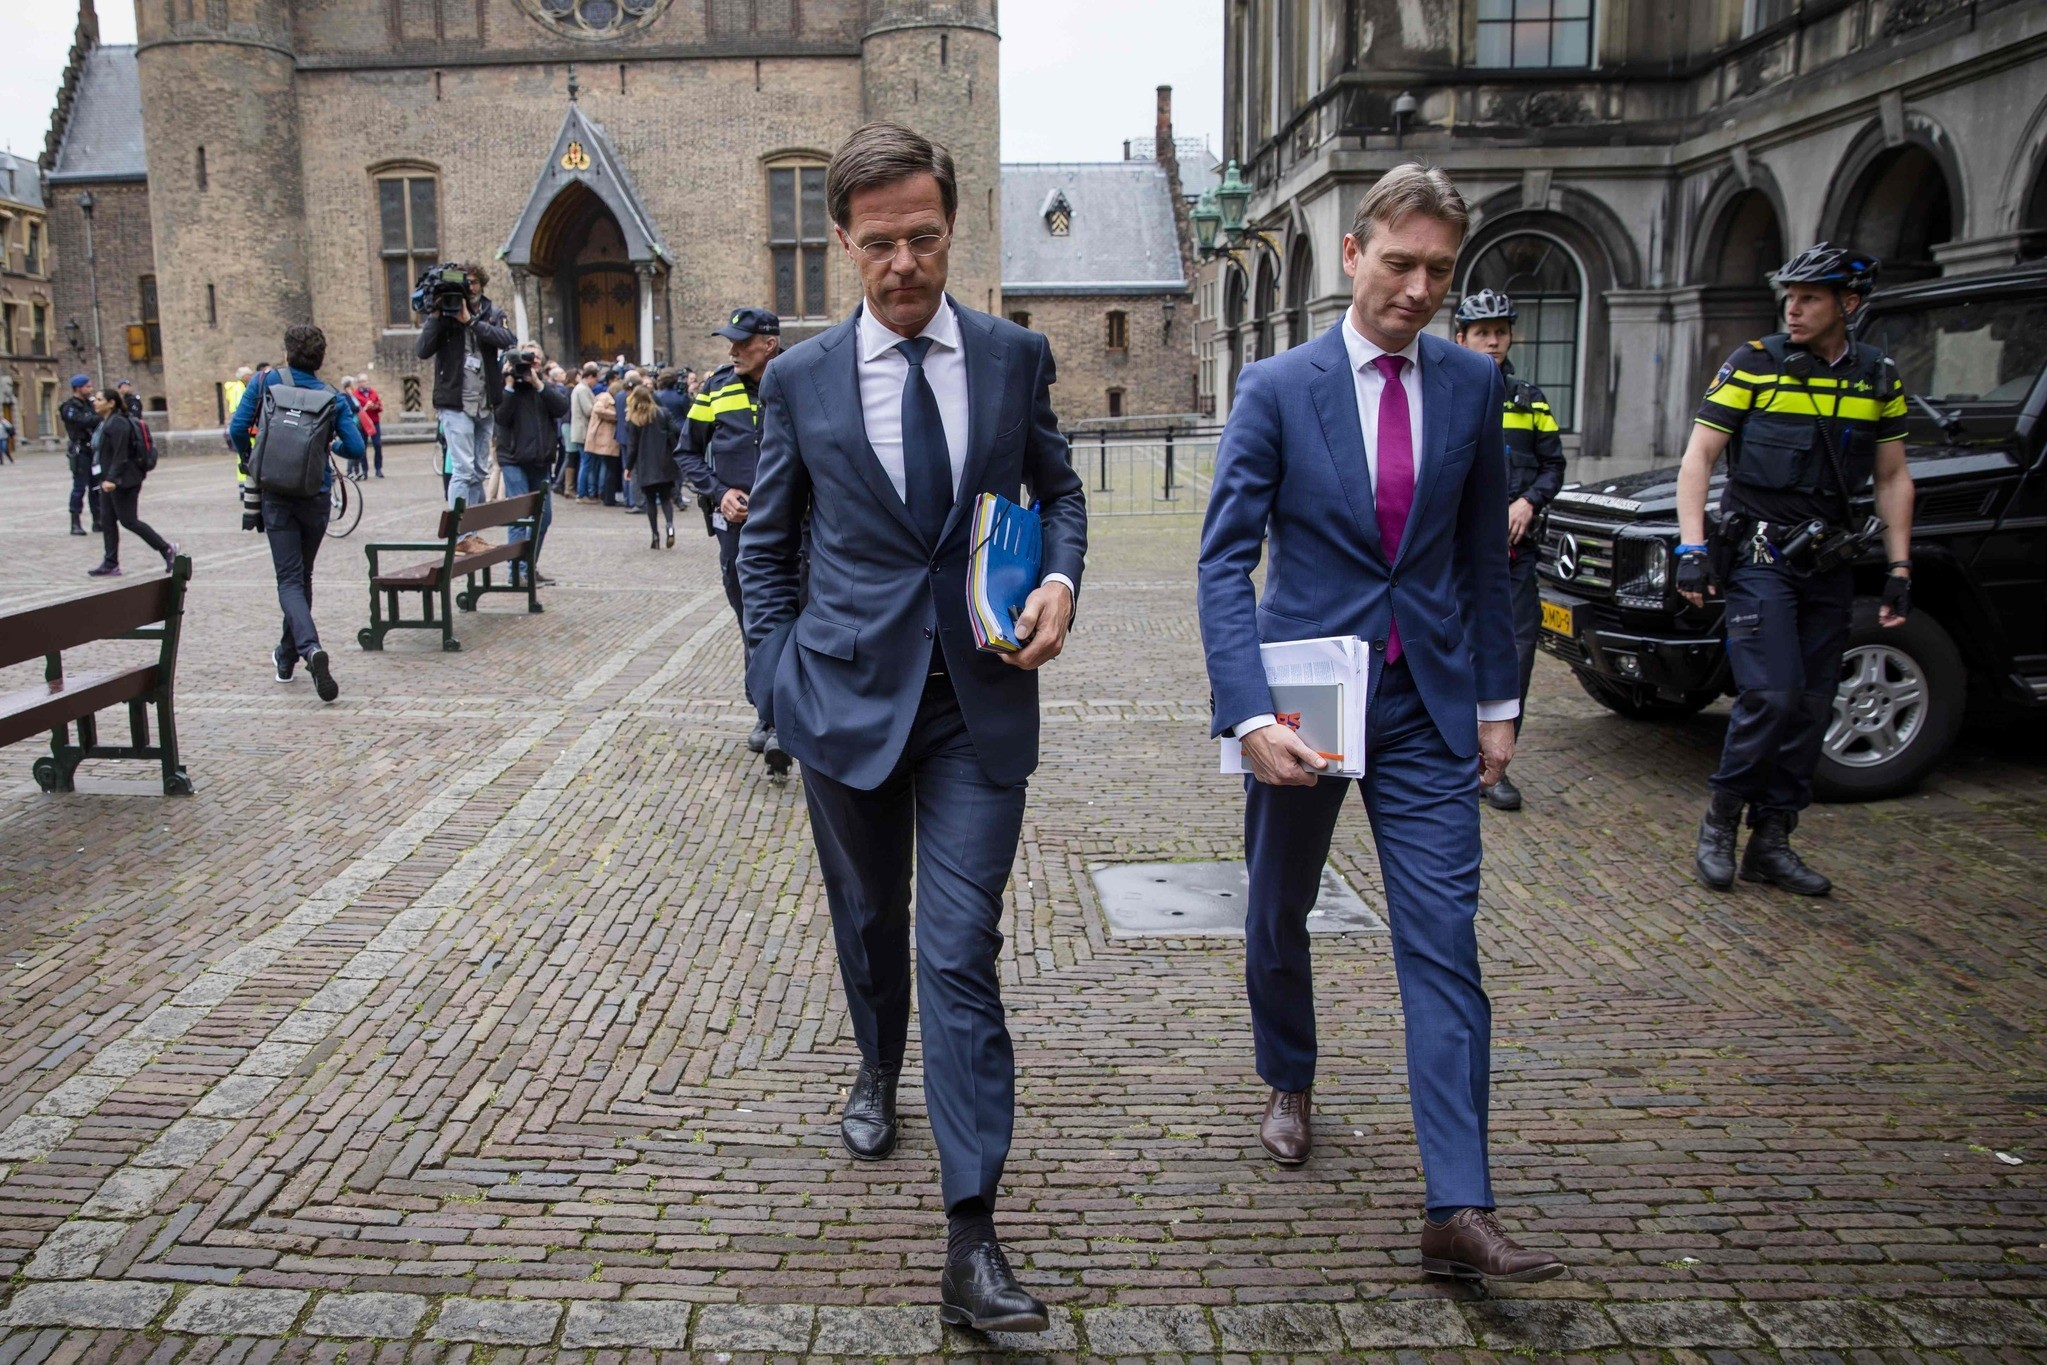 Dutch Prime Minister Mark Rutte (C) and member of the VVD party  leaves after negotiations of the formation of a coalition government. (AFP Photo)